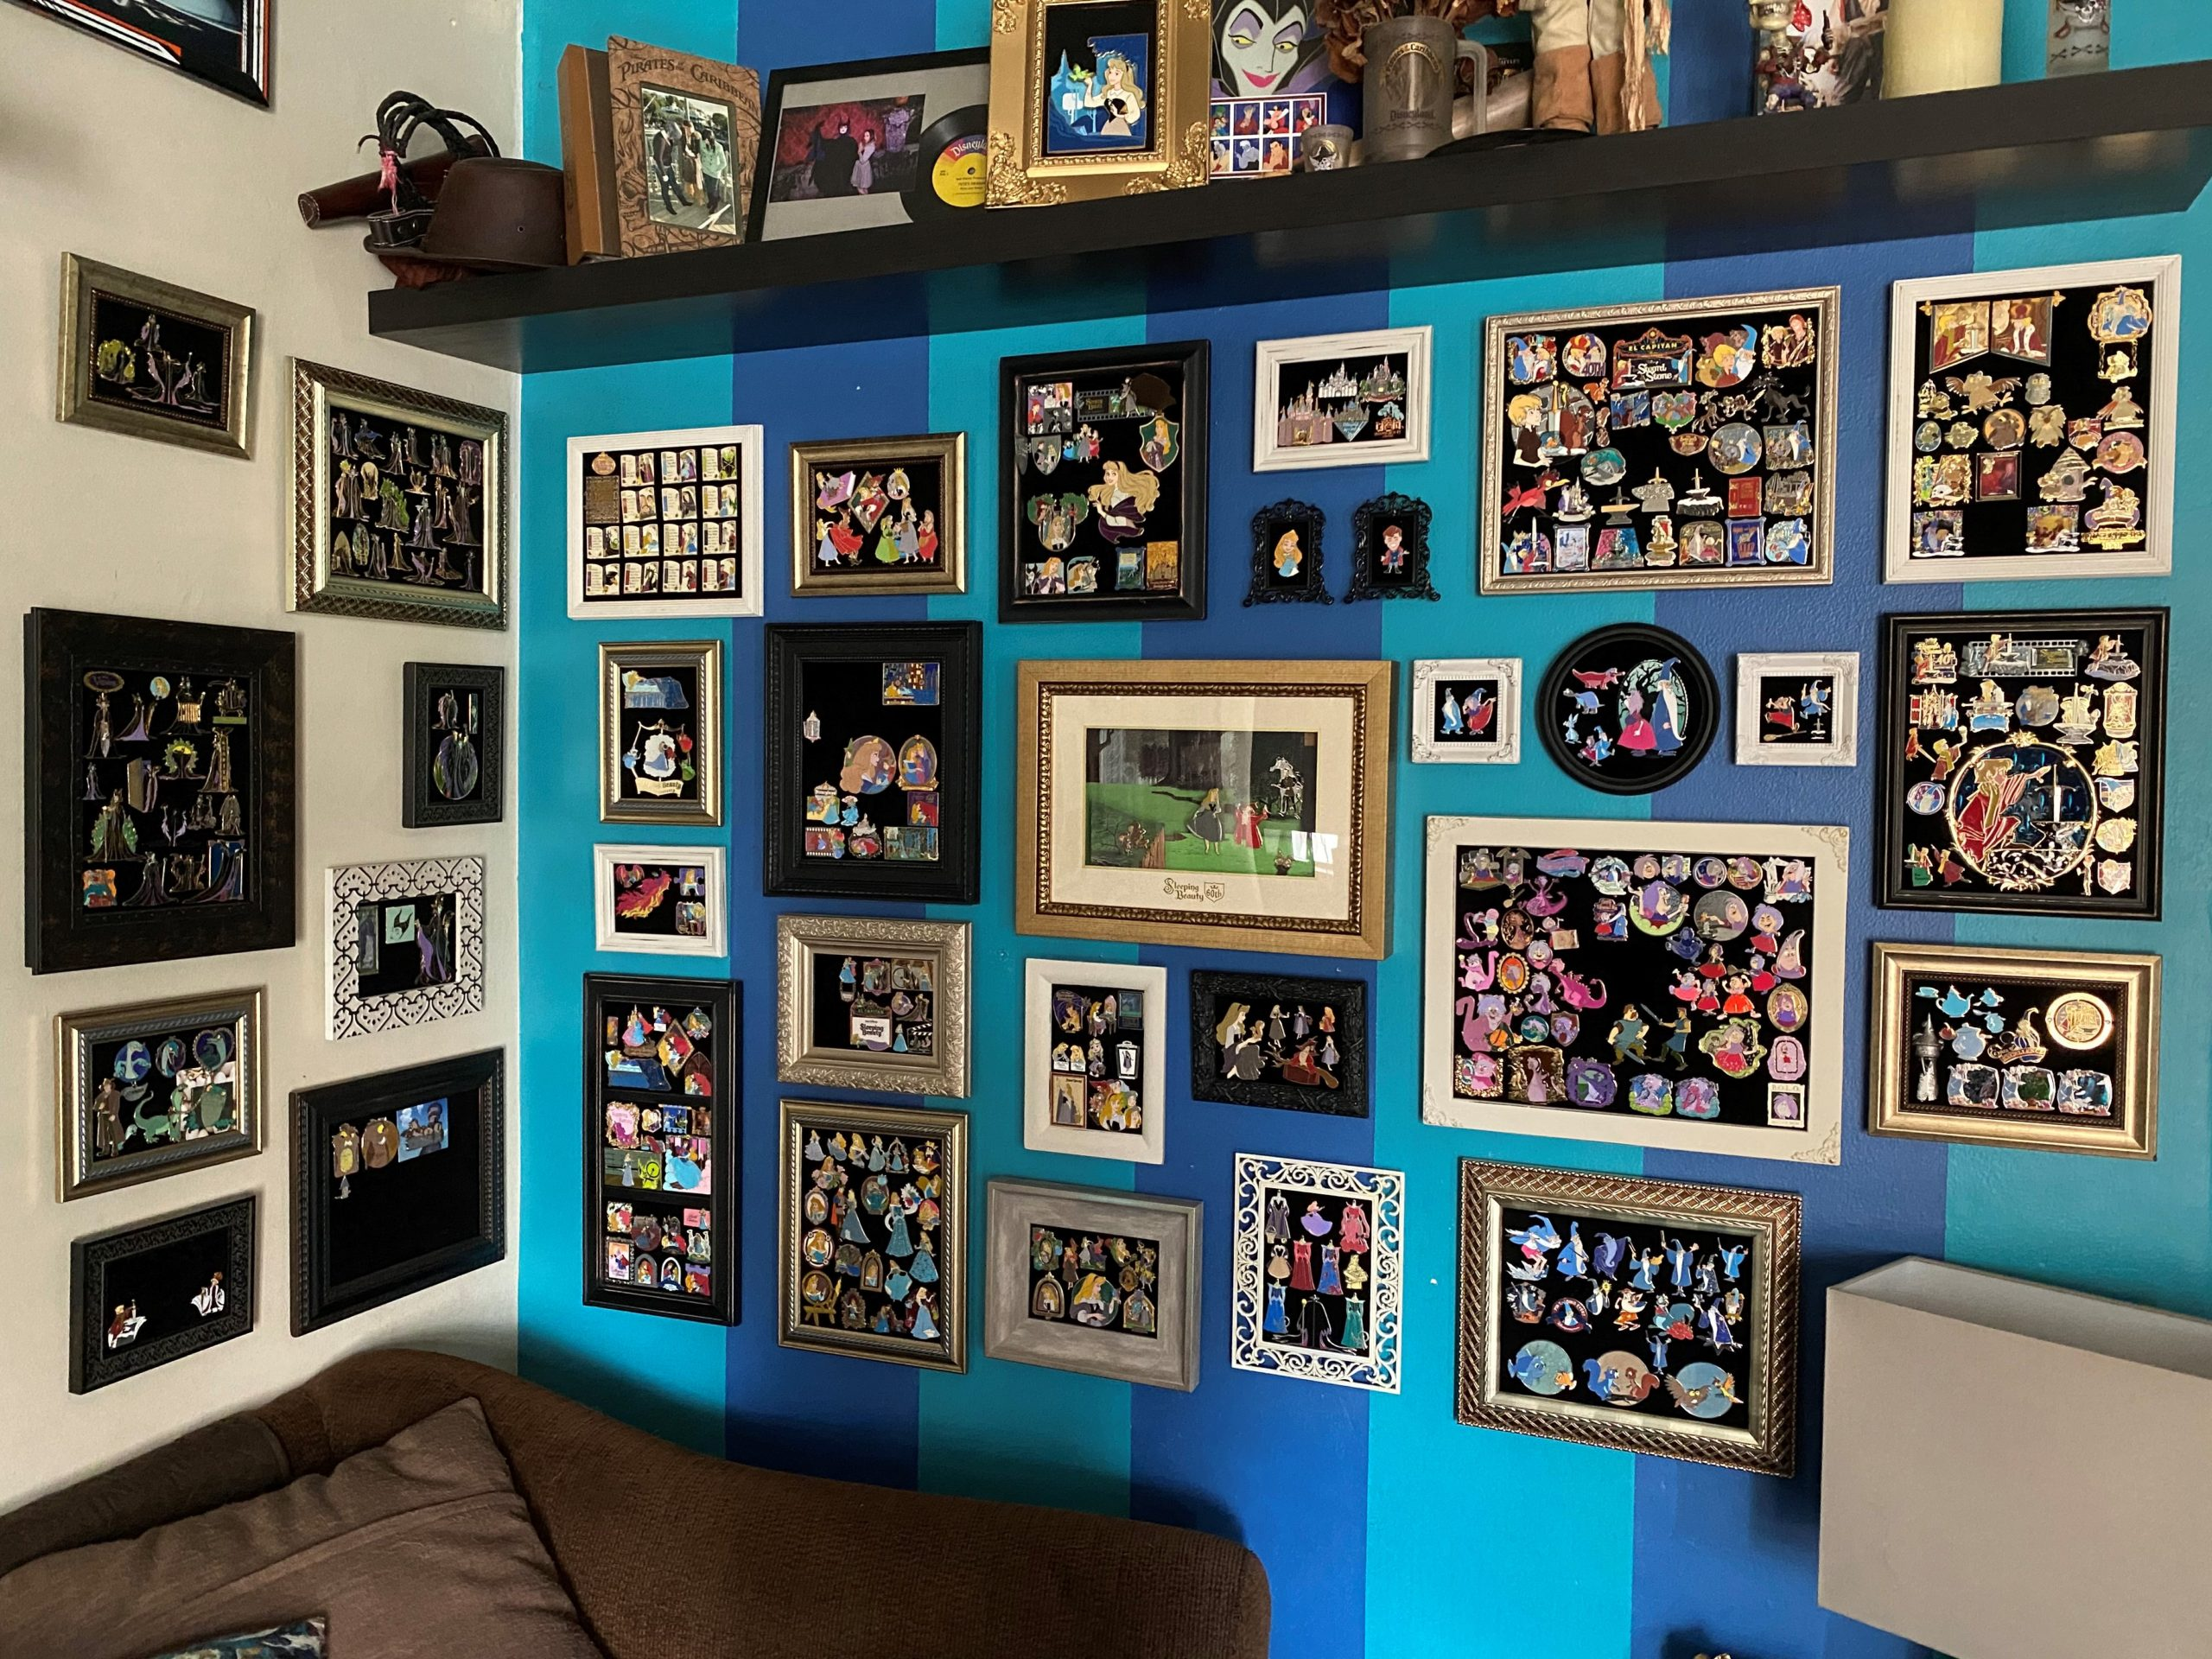 gallery of Disney pins on colorful wall